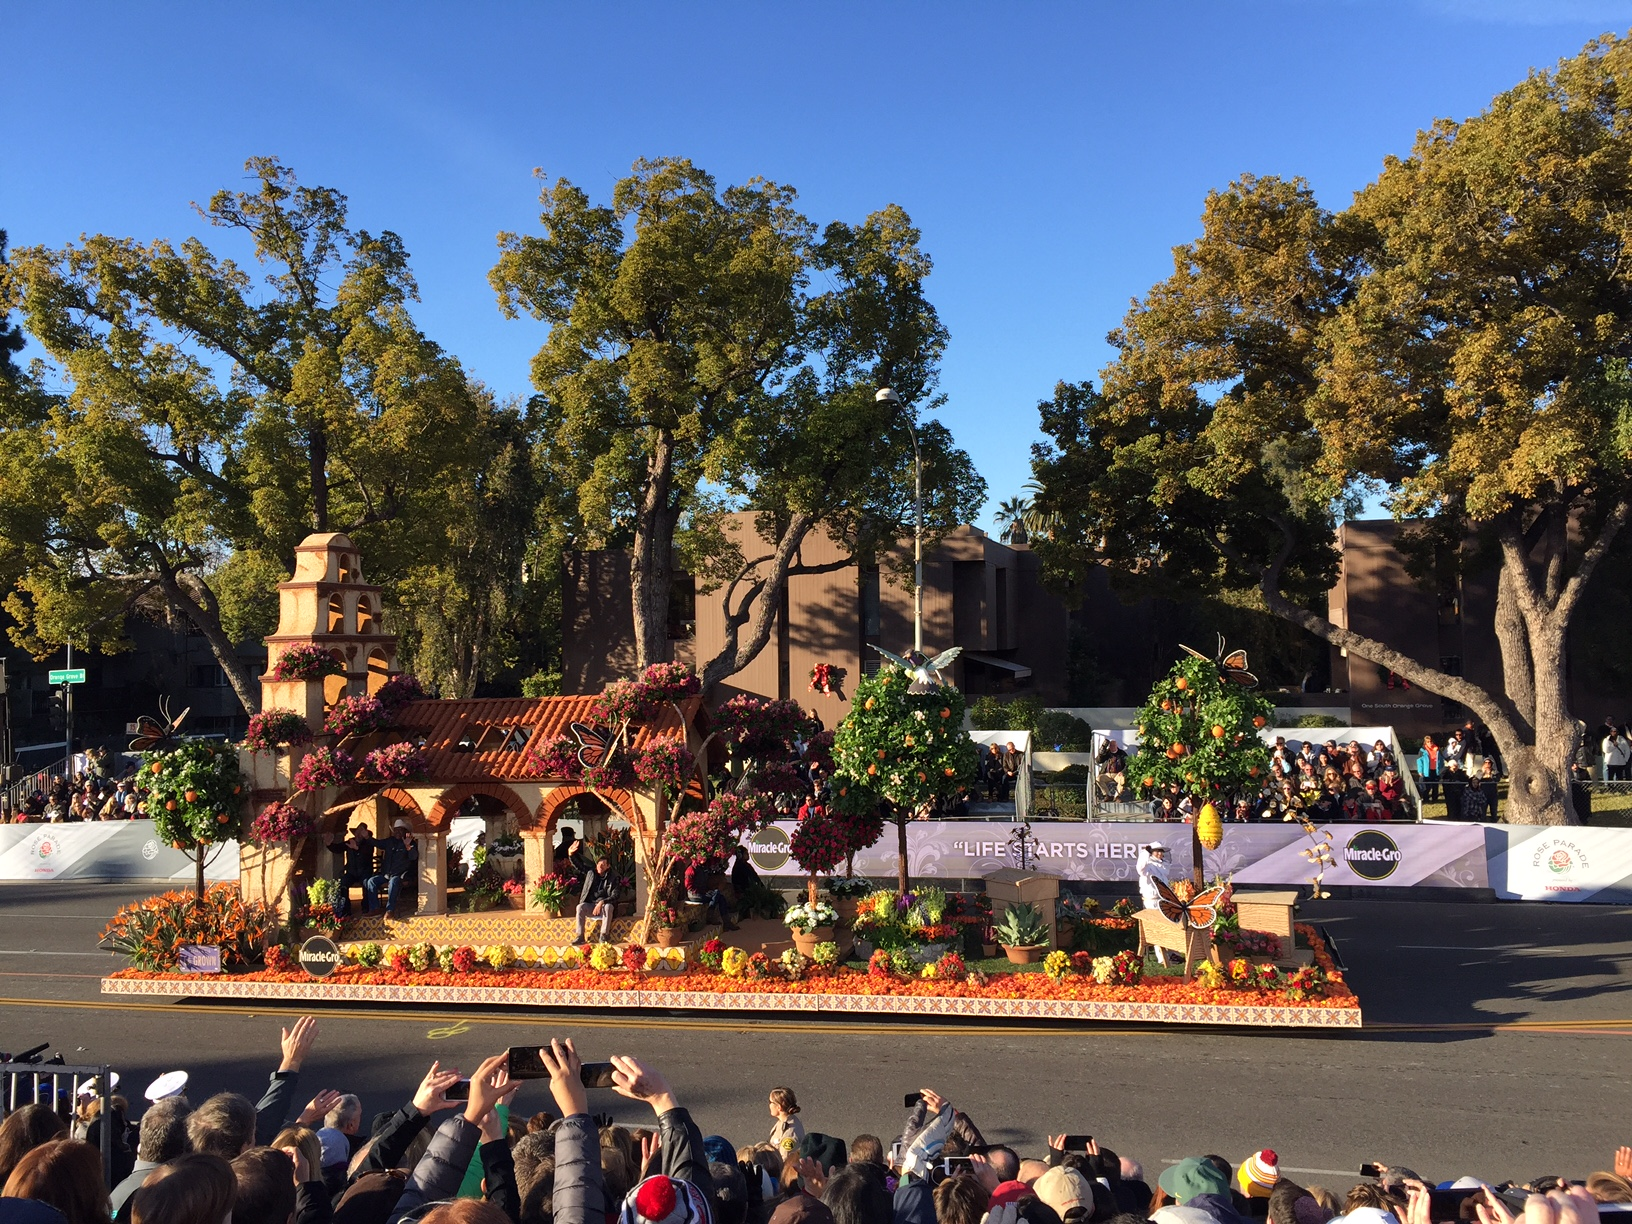 Rose Parade New Year's Day 2016, photo by Deborah Hall